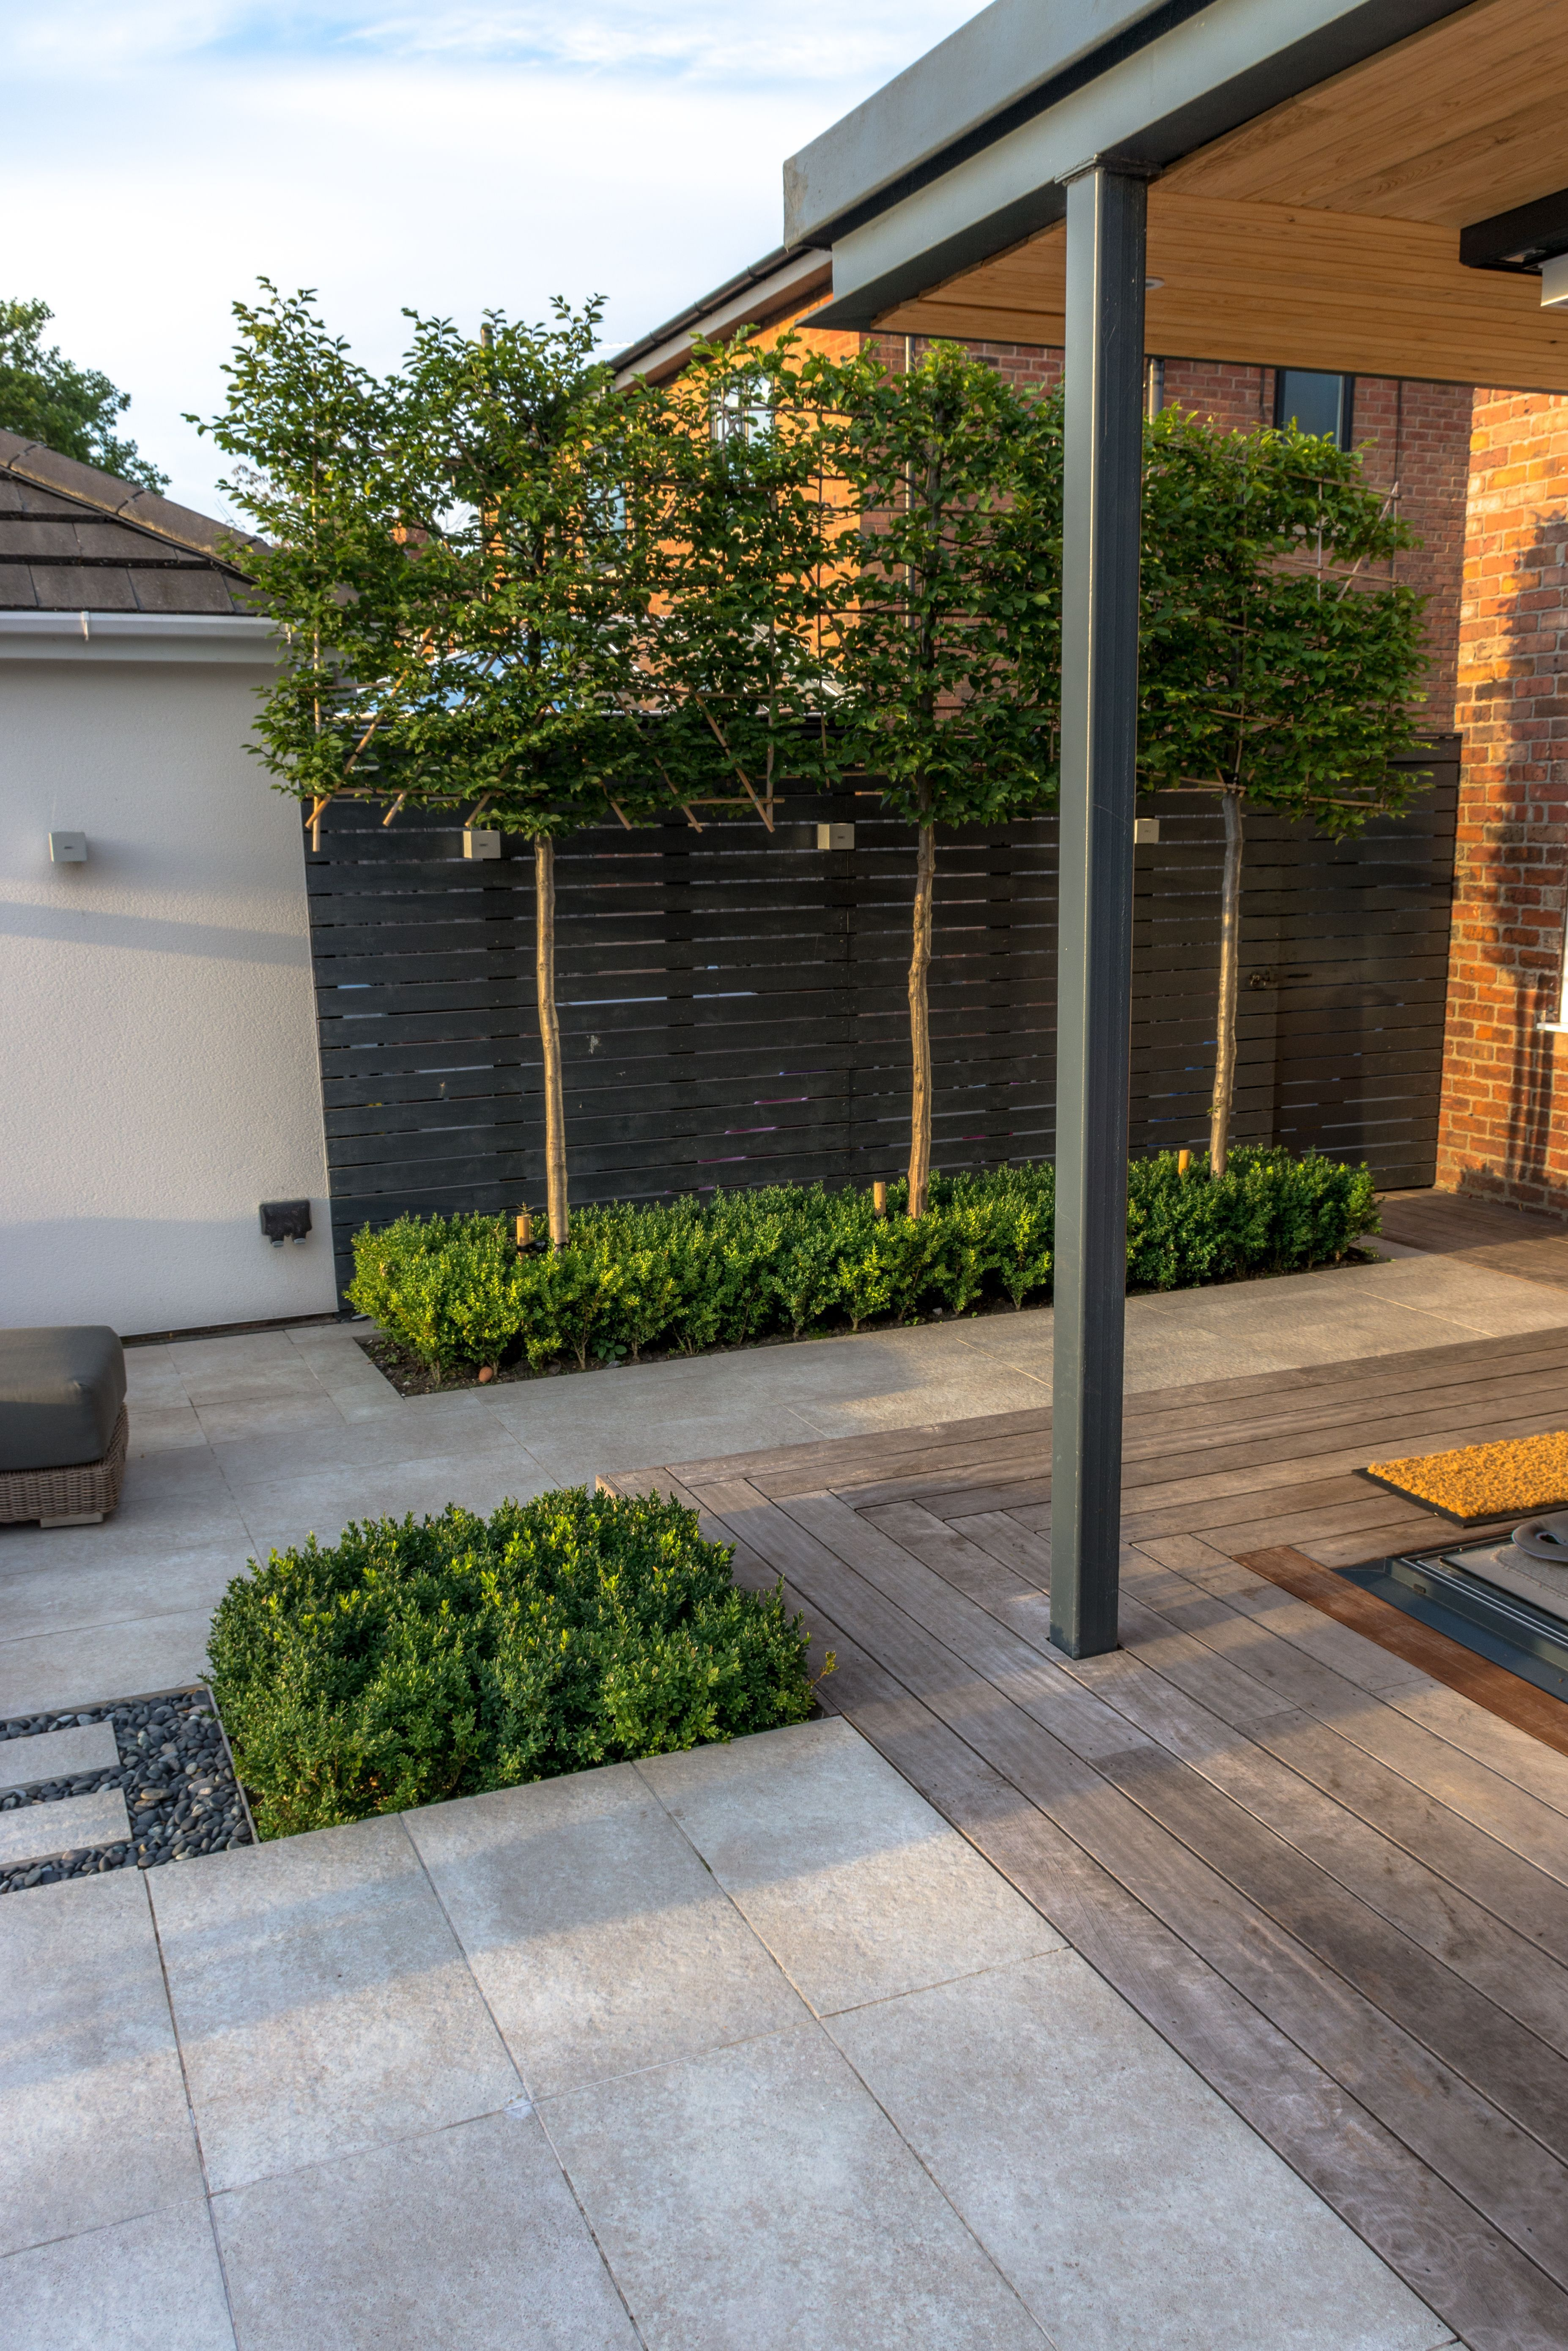 Pleached Hornbeam Designed By Robert Hughes Garden Design A Contemporary Landscape In Manchester In 2020 Contemporary Garden Design Garden Design Backyard Landscaping,Hand Made Simple Embroidery Designs For Baby Frocks